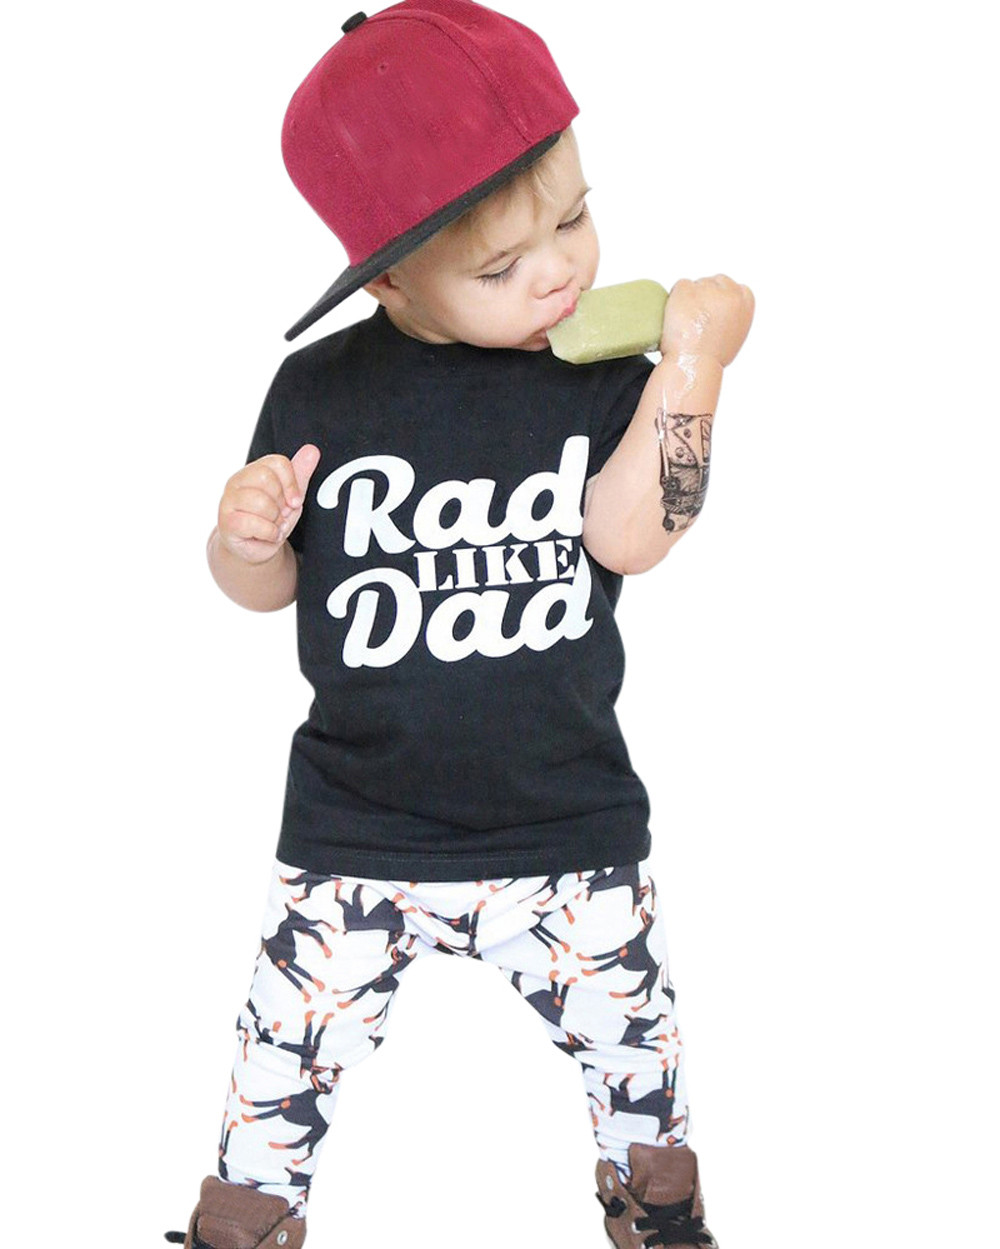 MUQGEW Toddler Boys Summer Clothes Letter Print Tops Shirt Pants Outfit Set Clothes Kids Hip Hop Clothing Menino Q06